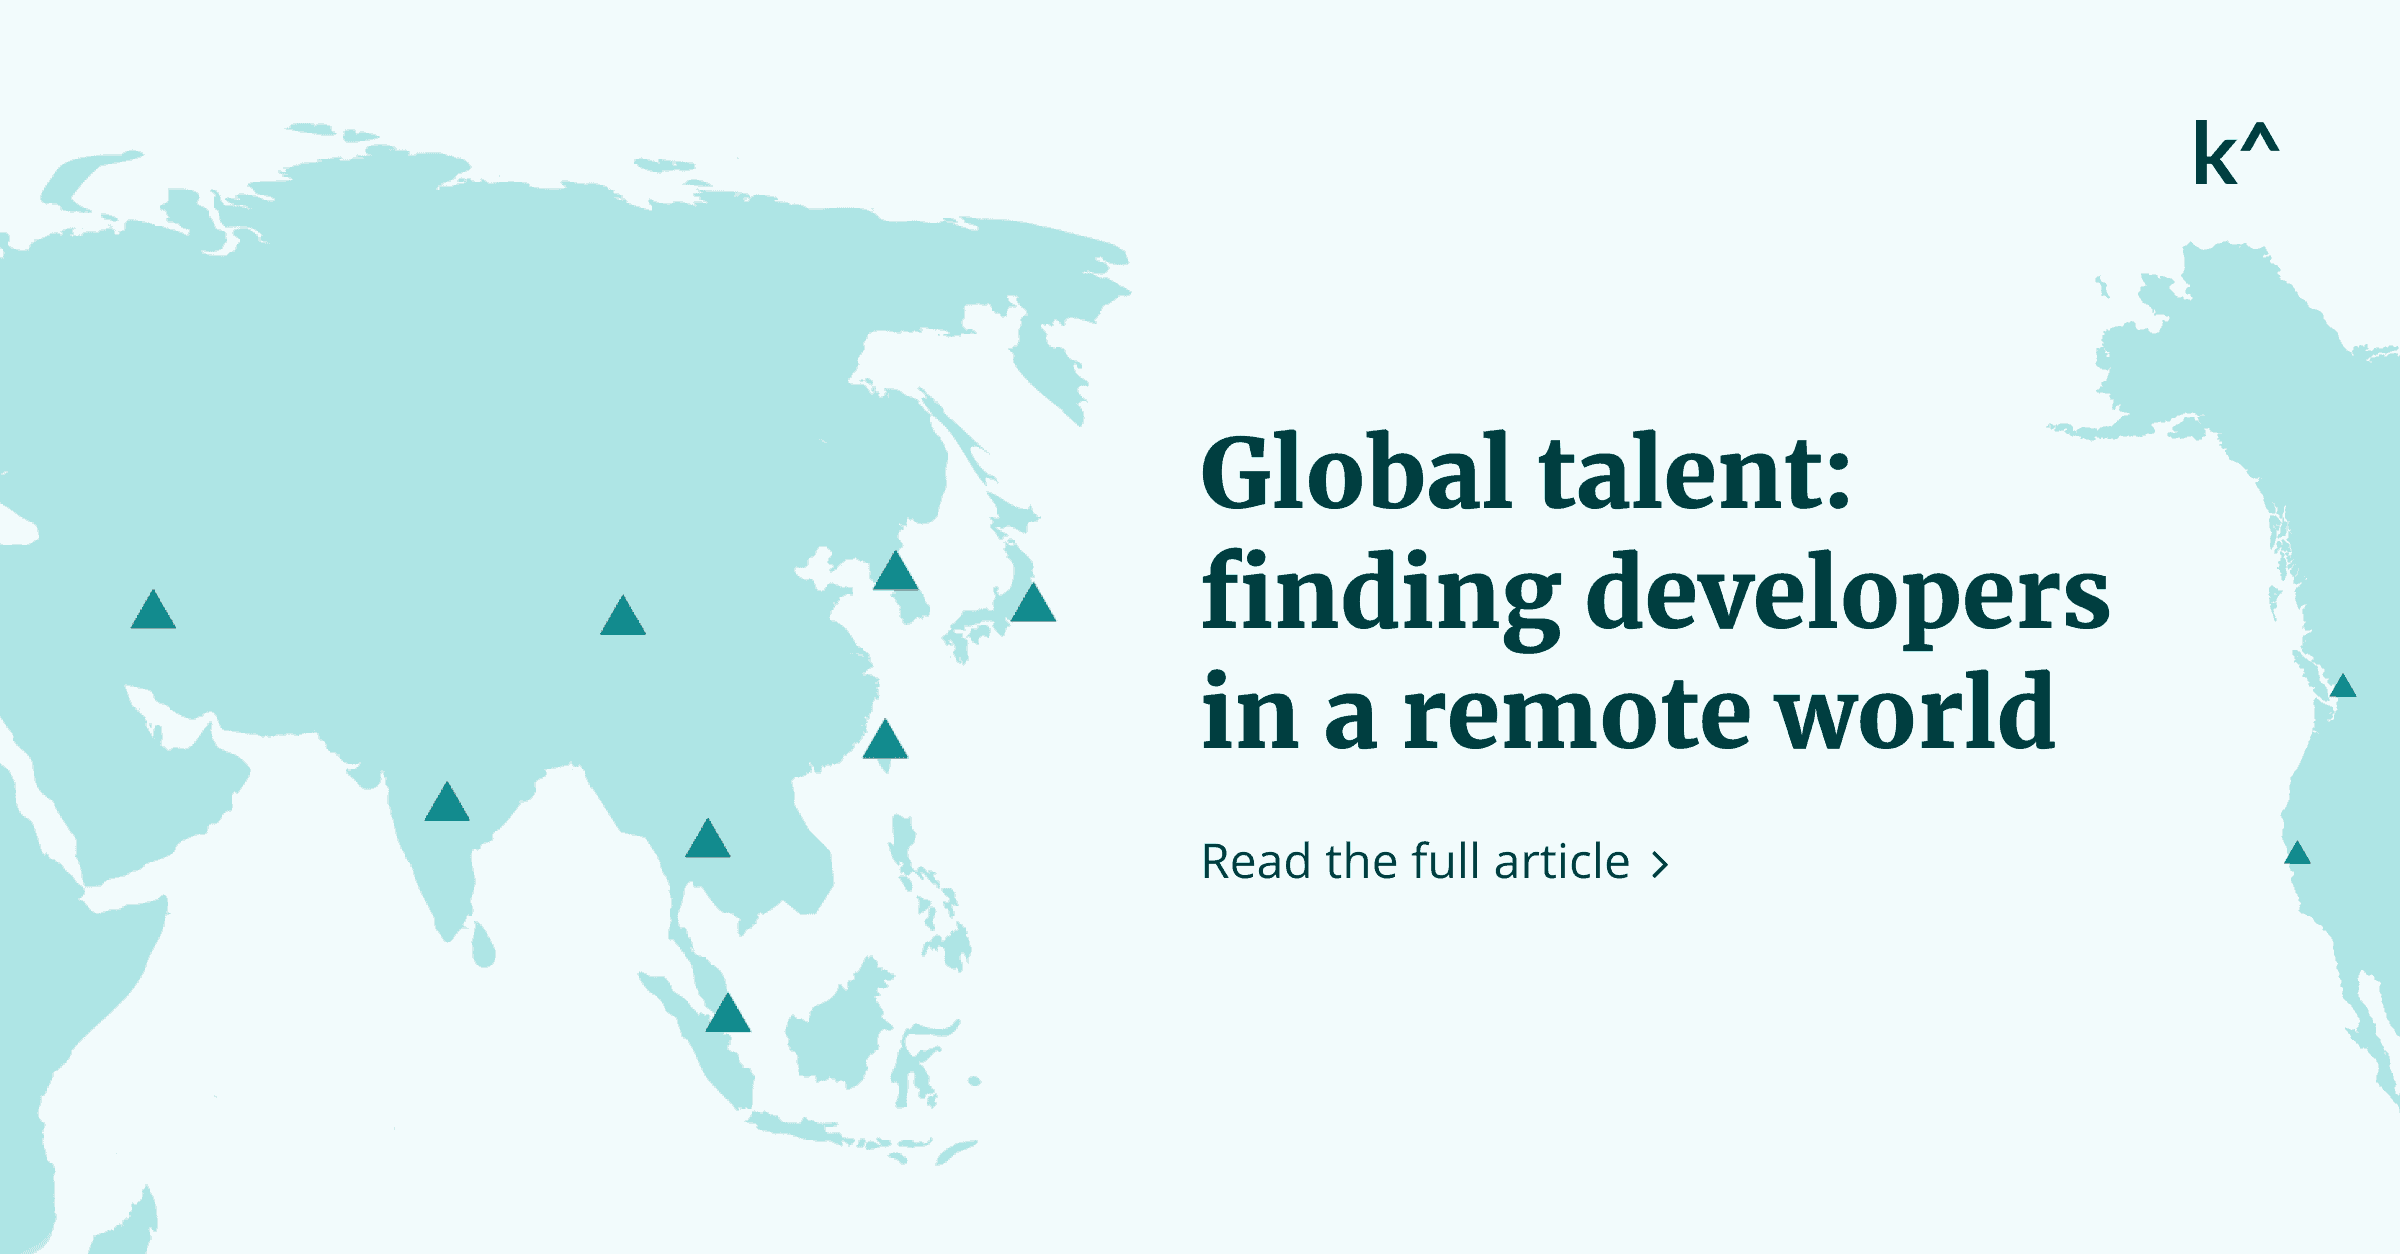 Global talent: finding developers in a remote world